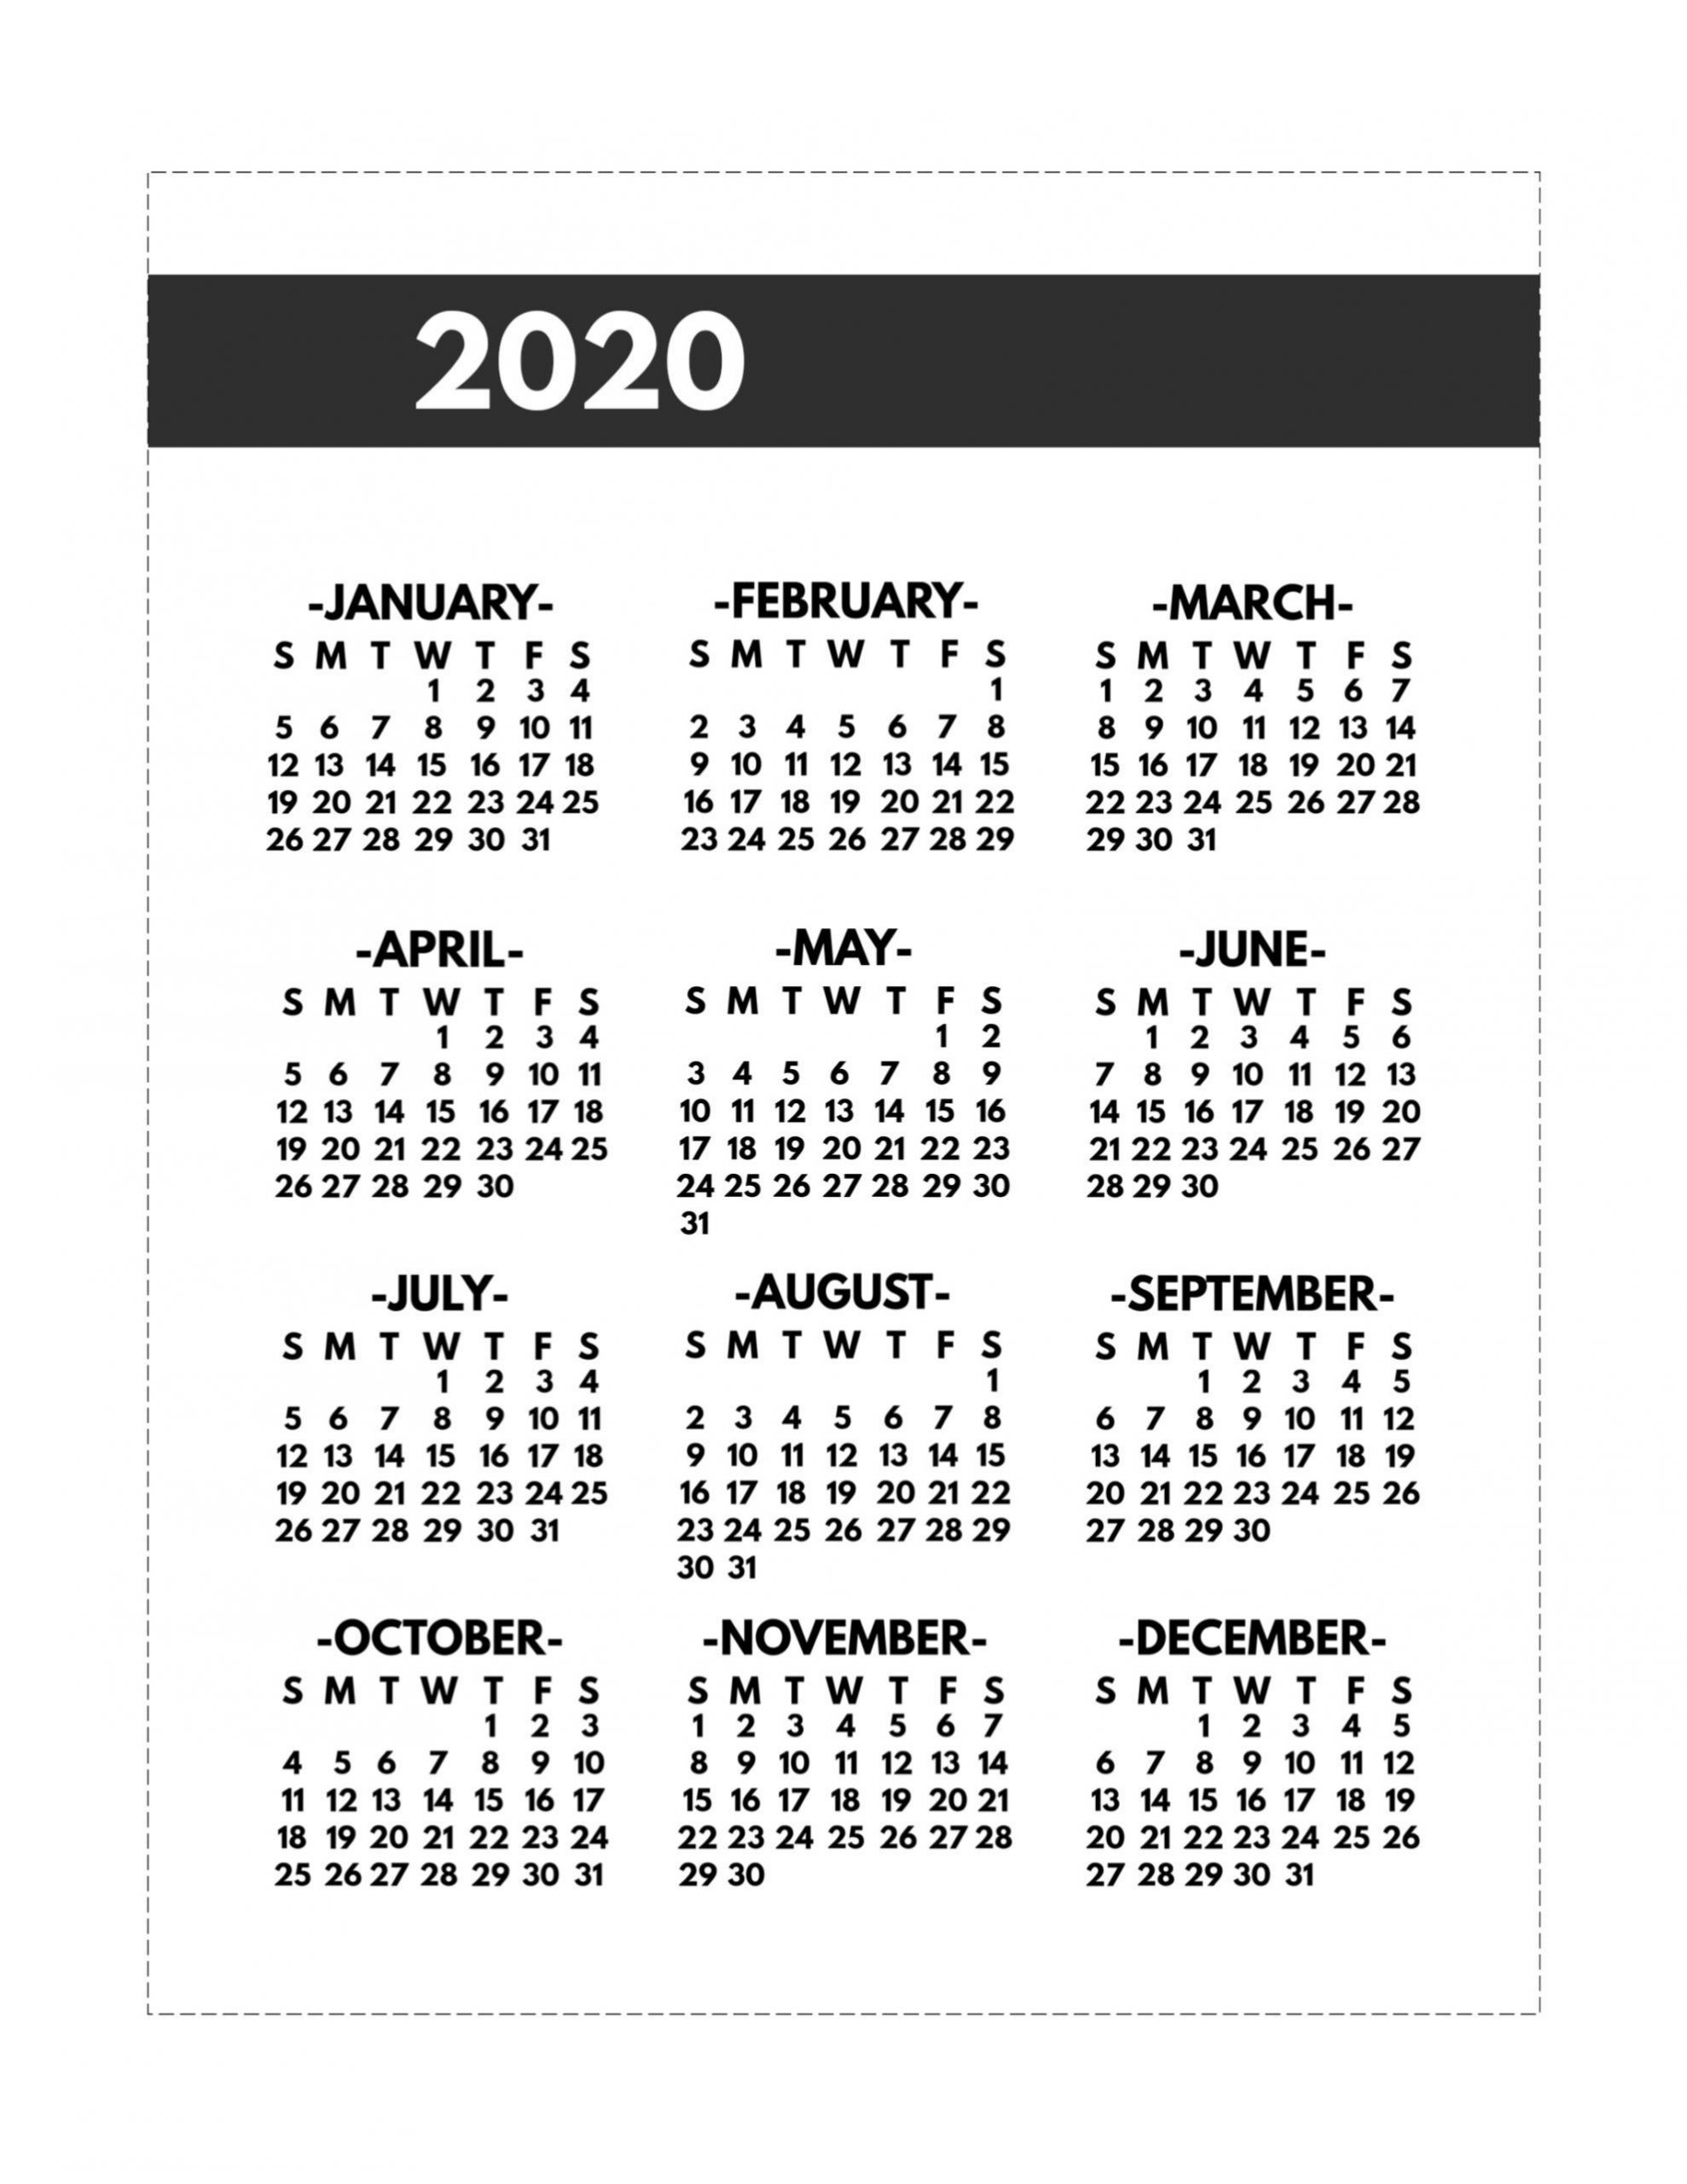 Remarkable Printable Calander 8 5 X 11 In 2020 | Calendar